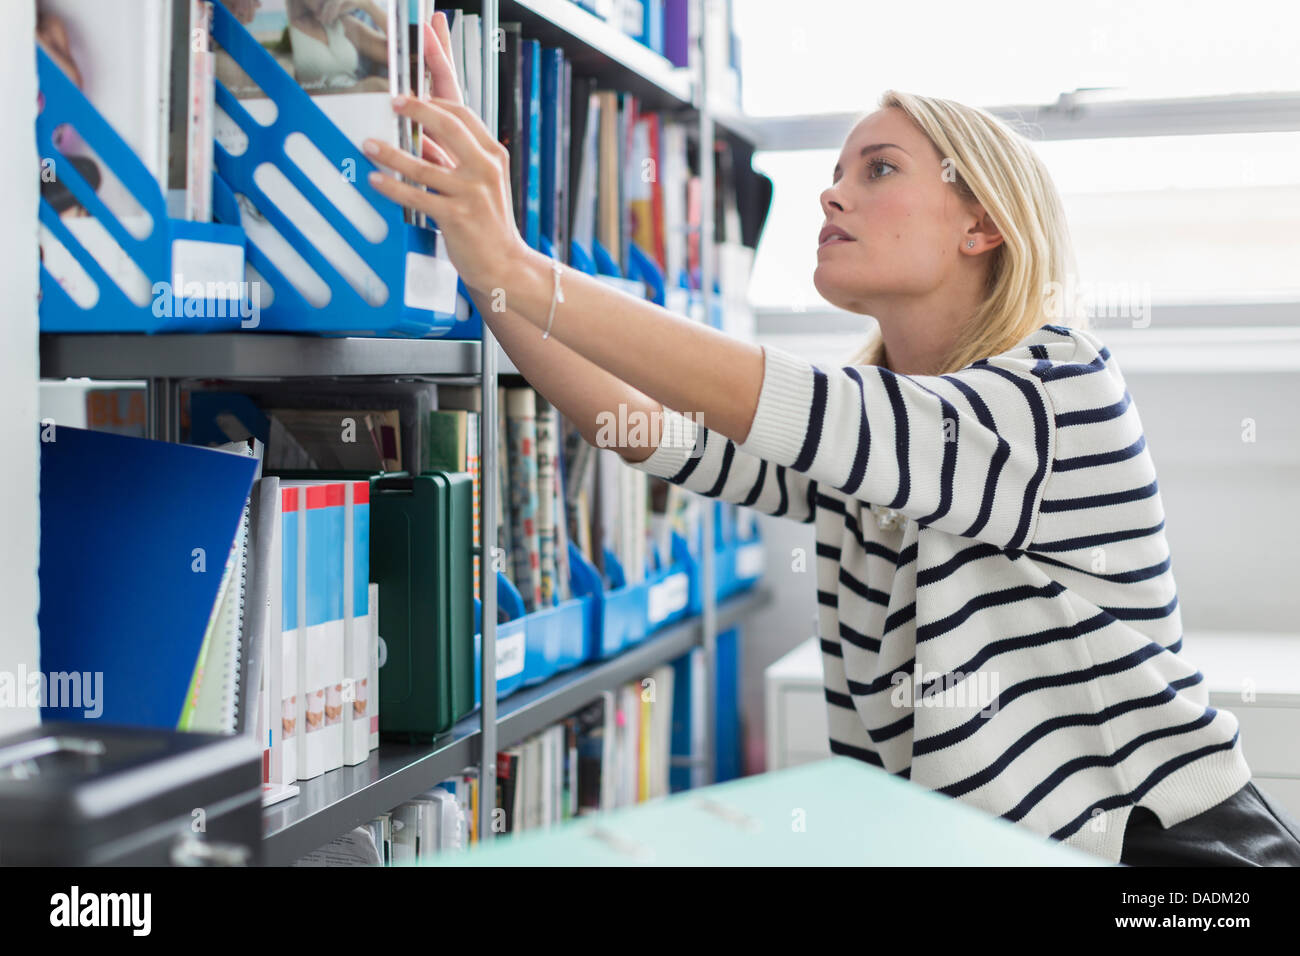 Young office workers reaching for books in office - Stock Image